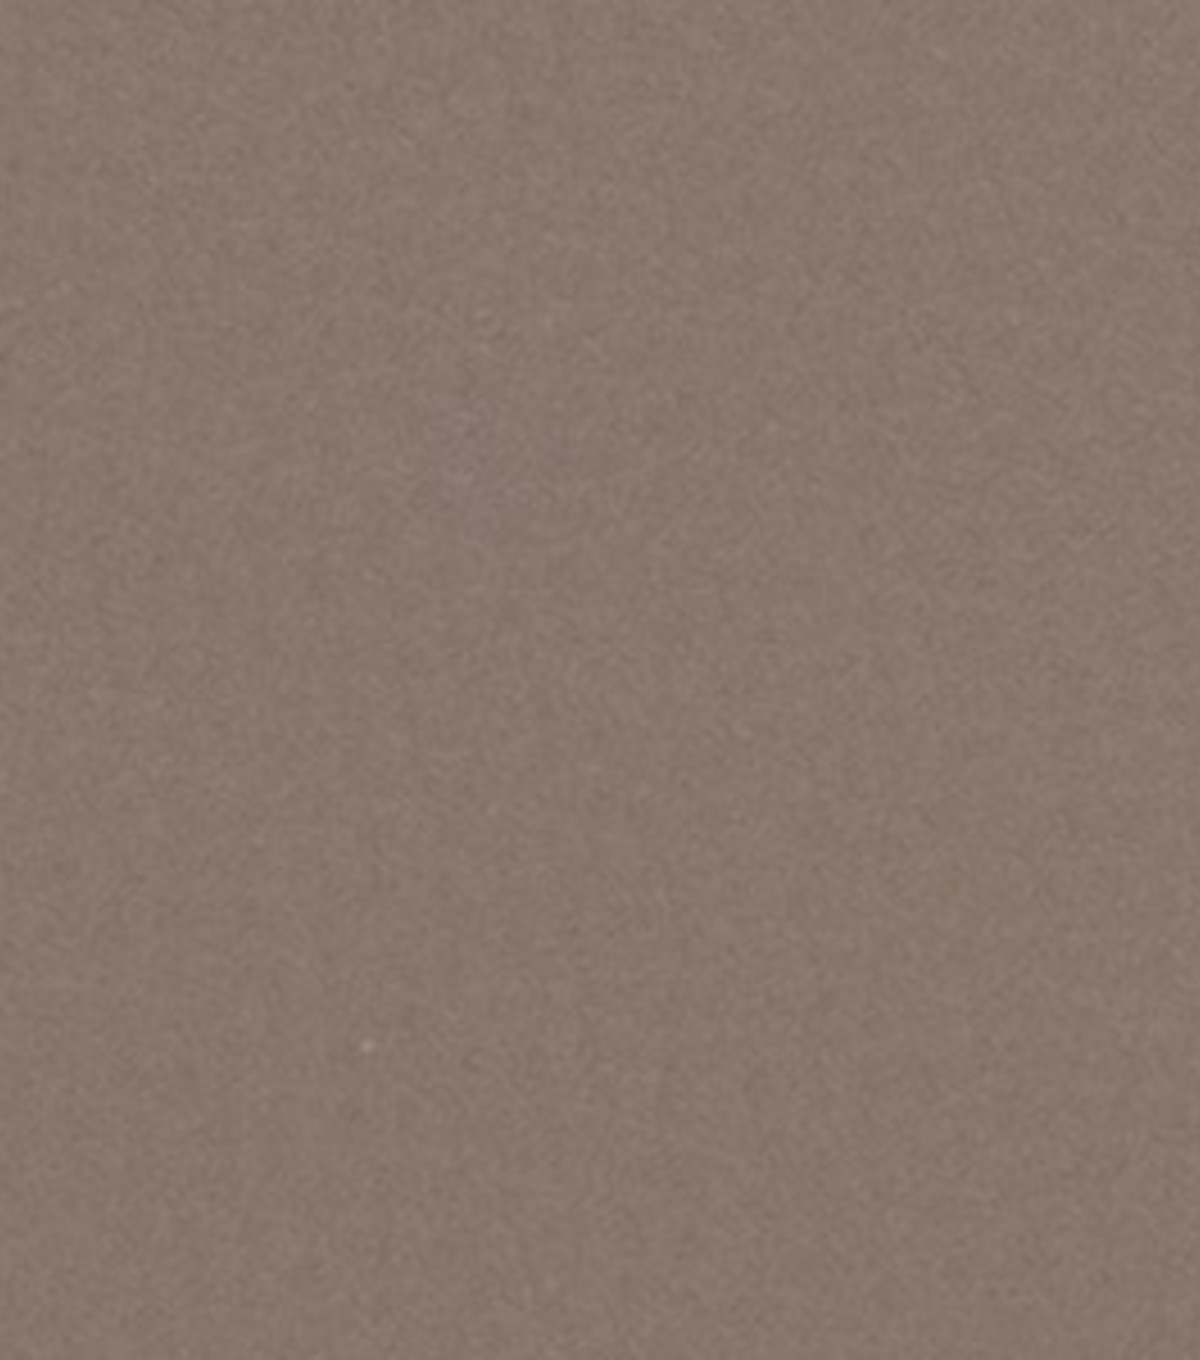 Home Decor 8\u0022x8\u0022 Fabric Swatch-Signature Series Boyd Roebuck